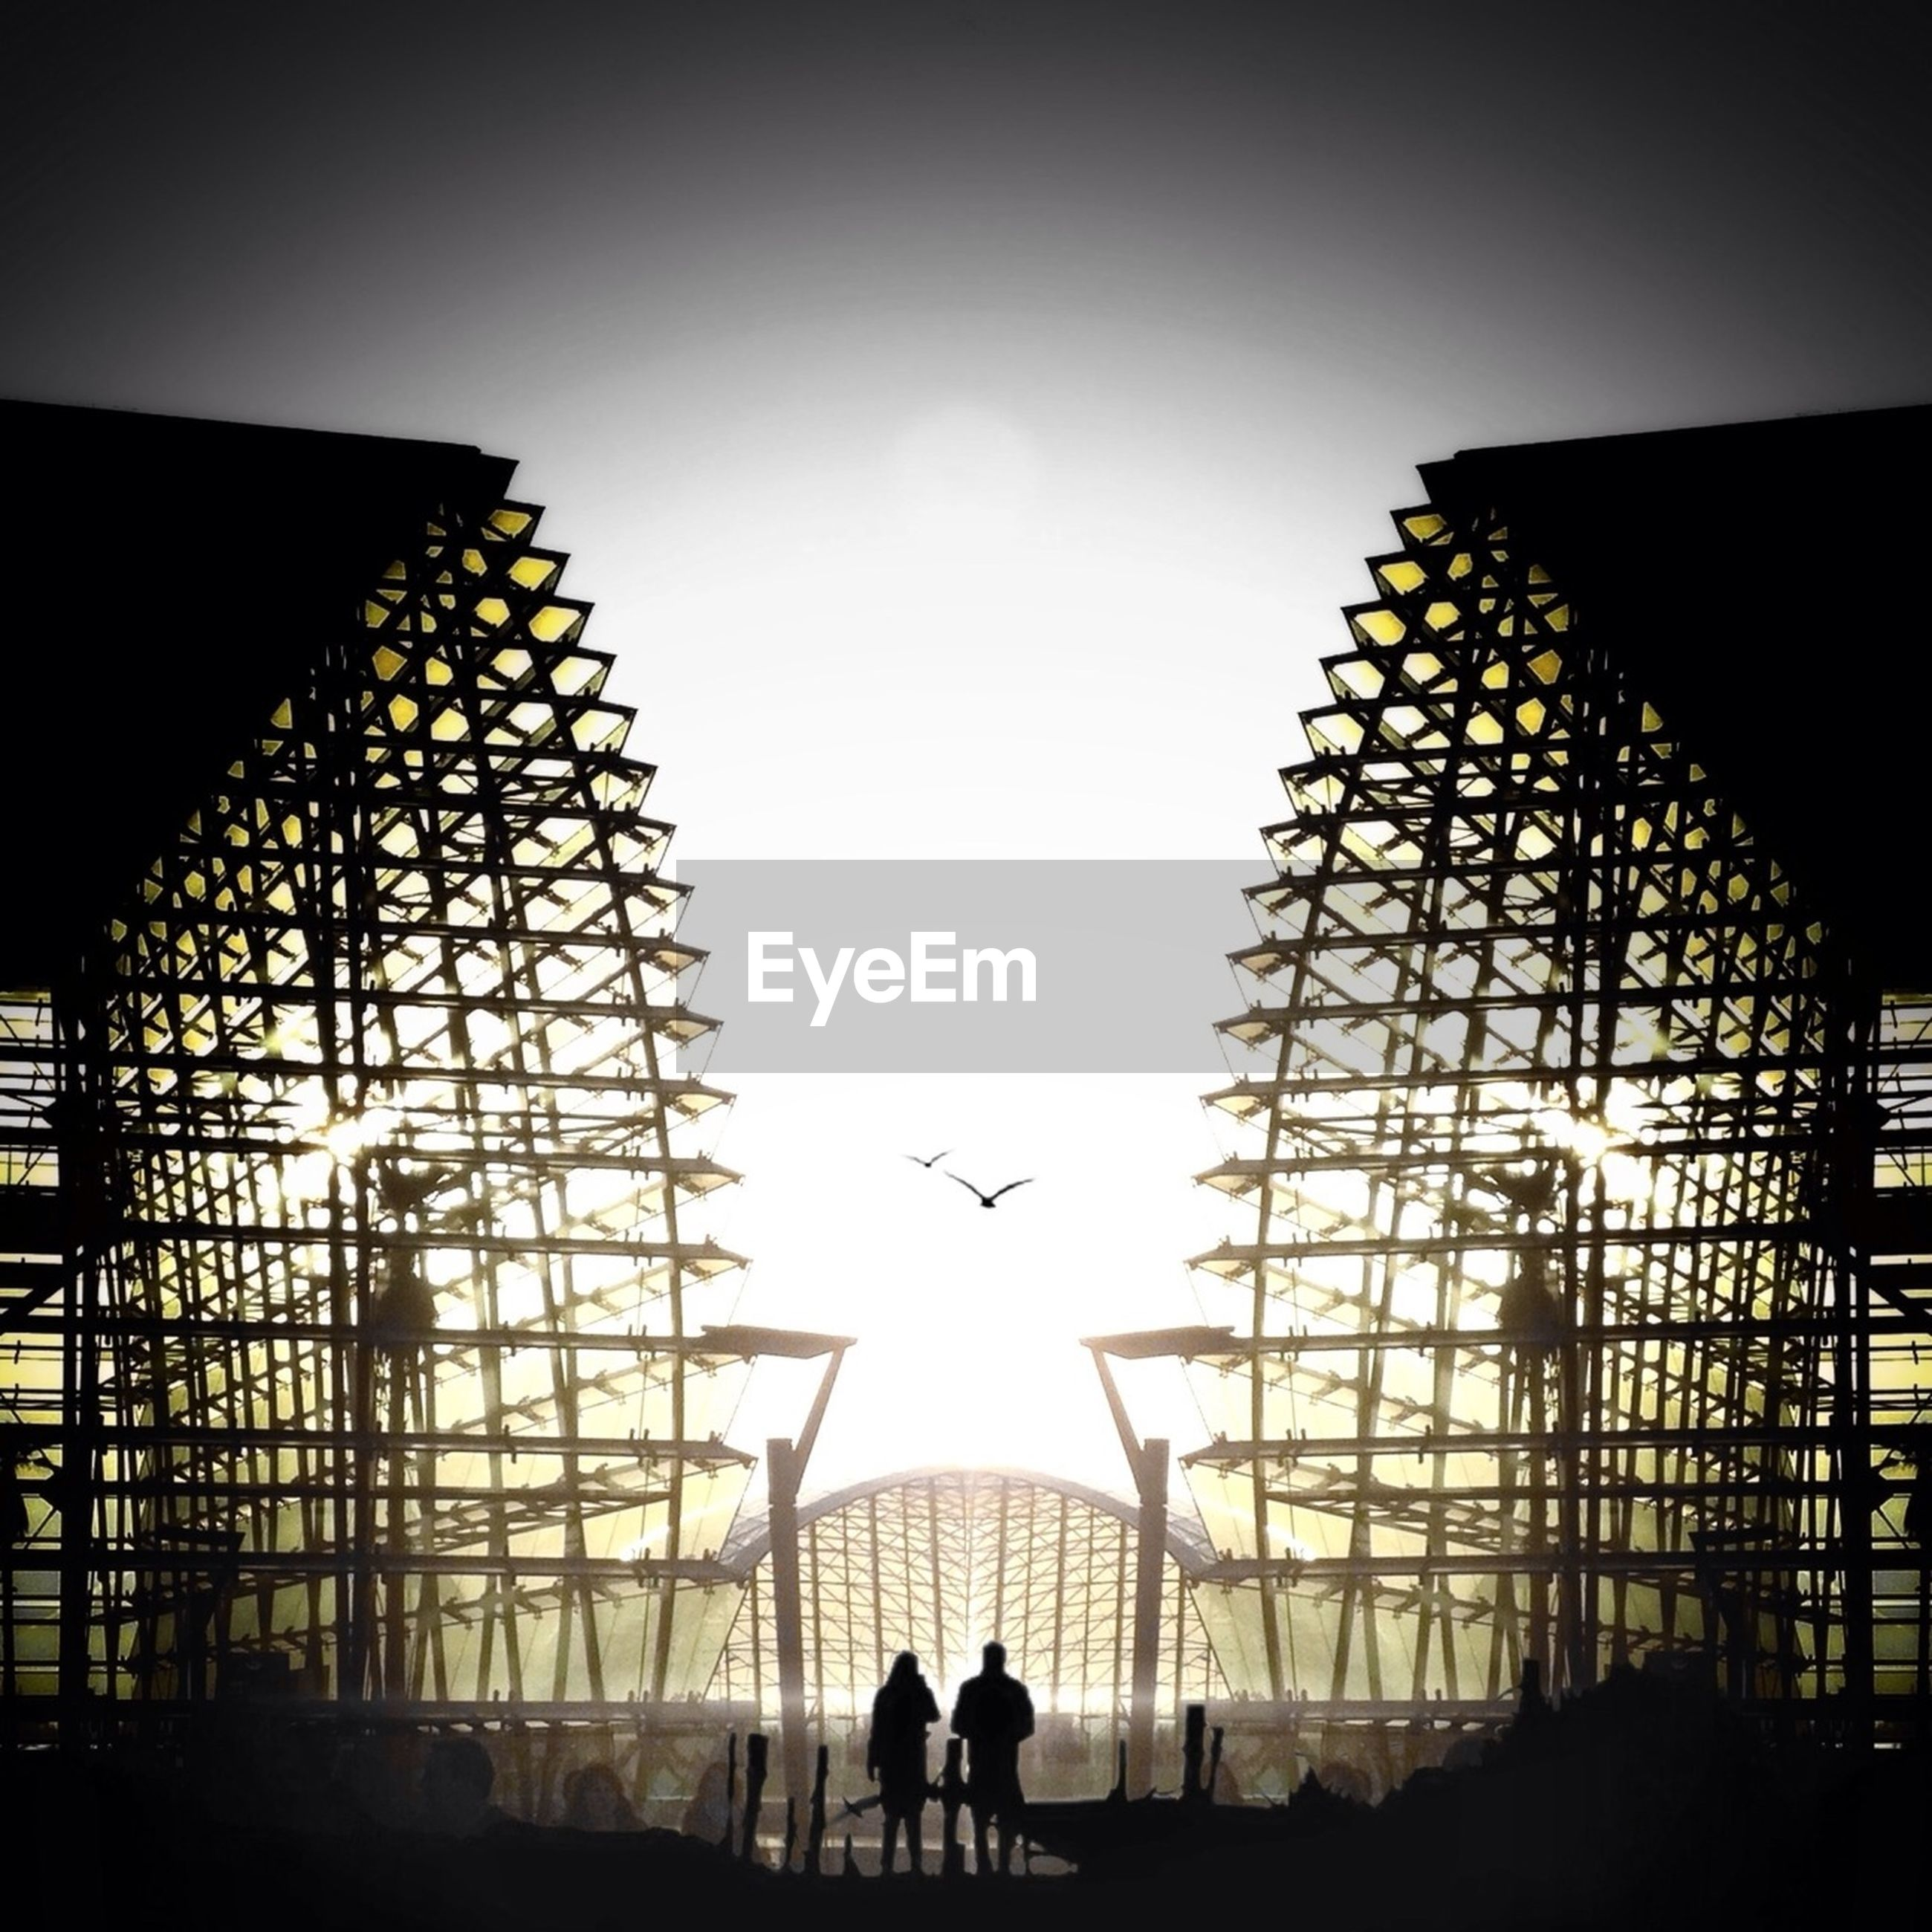 Silhouette people standing by modern built structure against sky